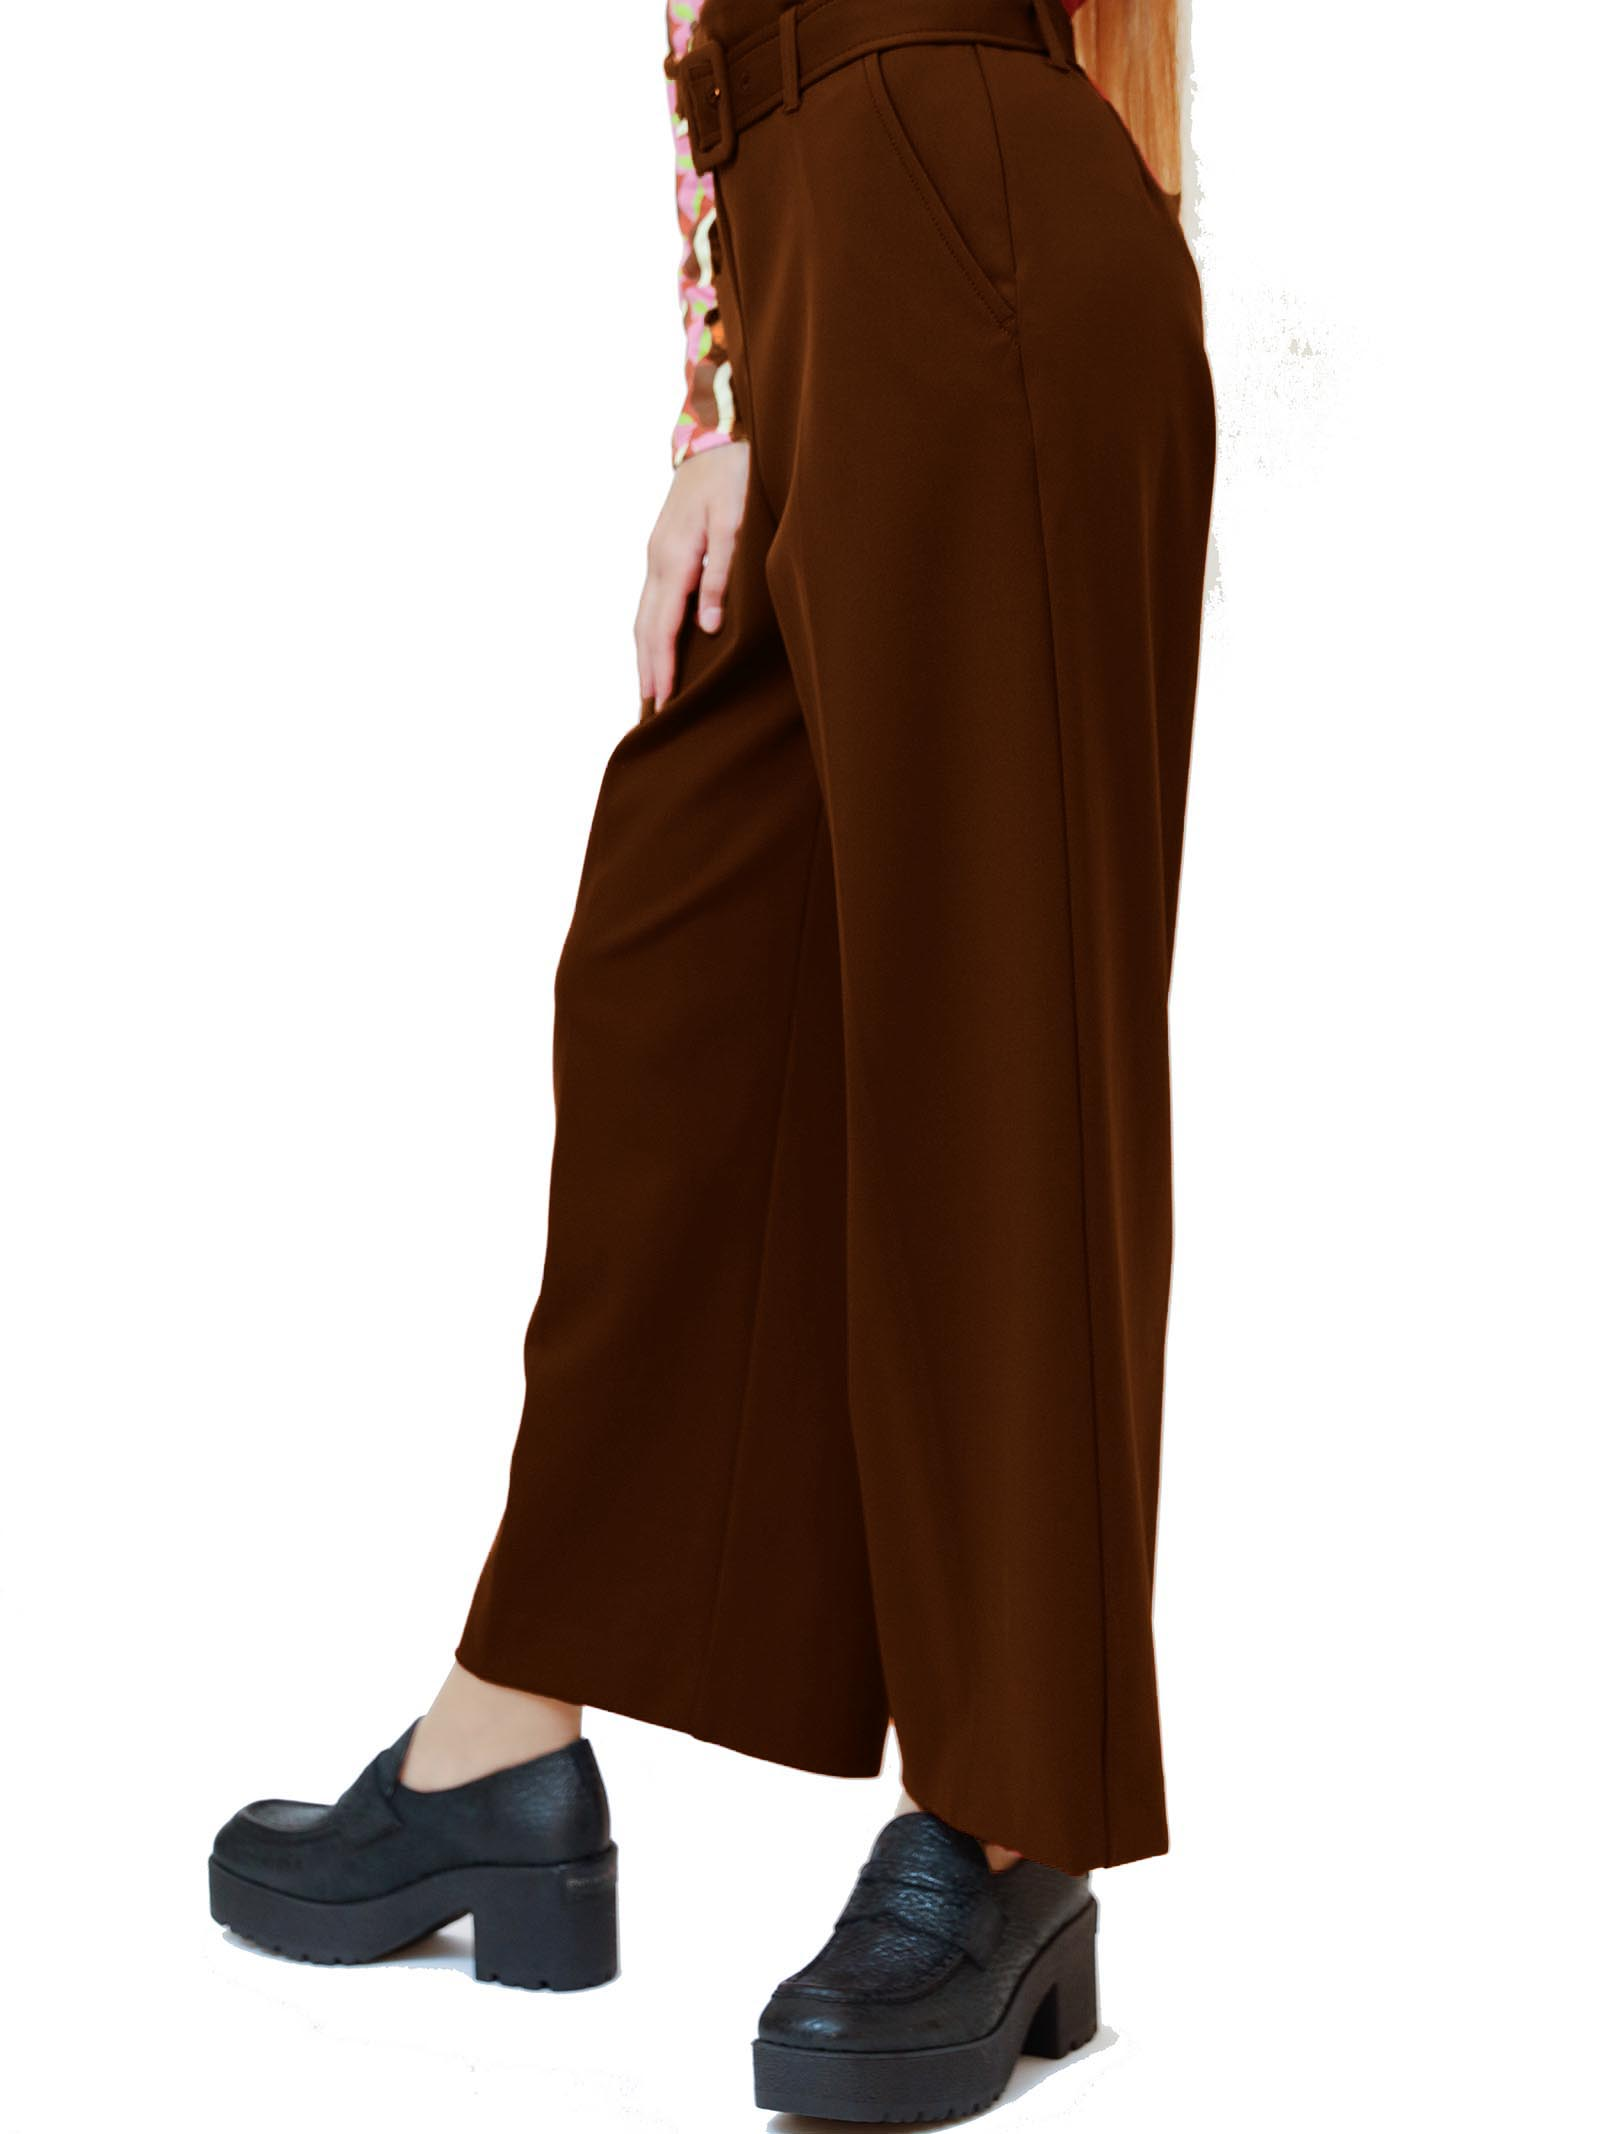 Women's Clothing Pants Techno in Tan Stretch with Belt in Tone Maliparmi   Skirts and Pants   JH74766005741009